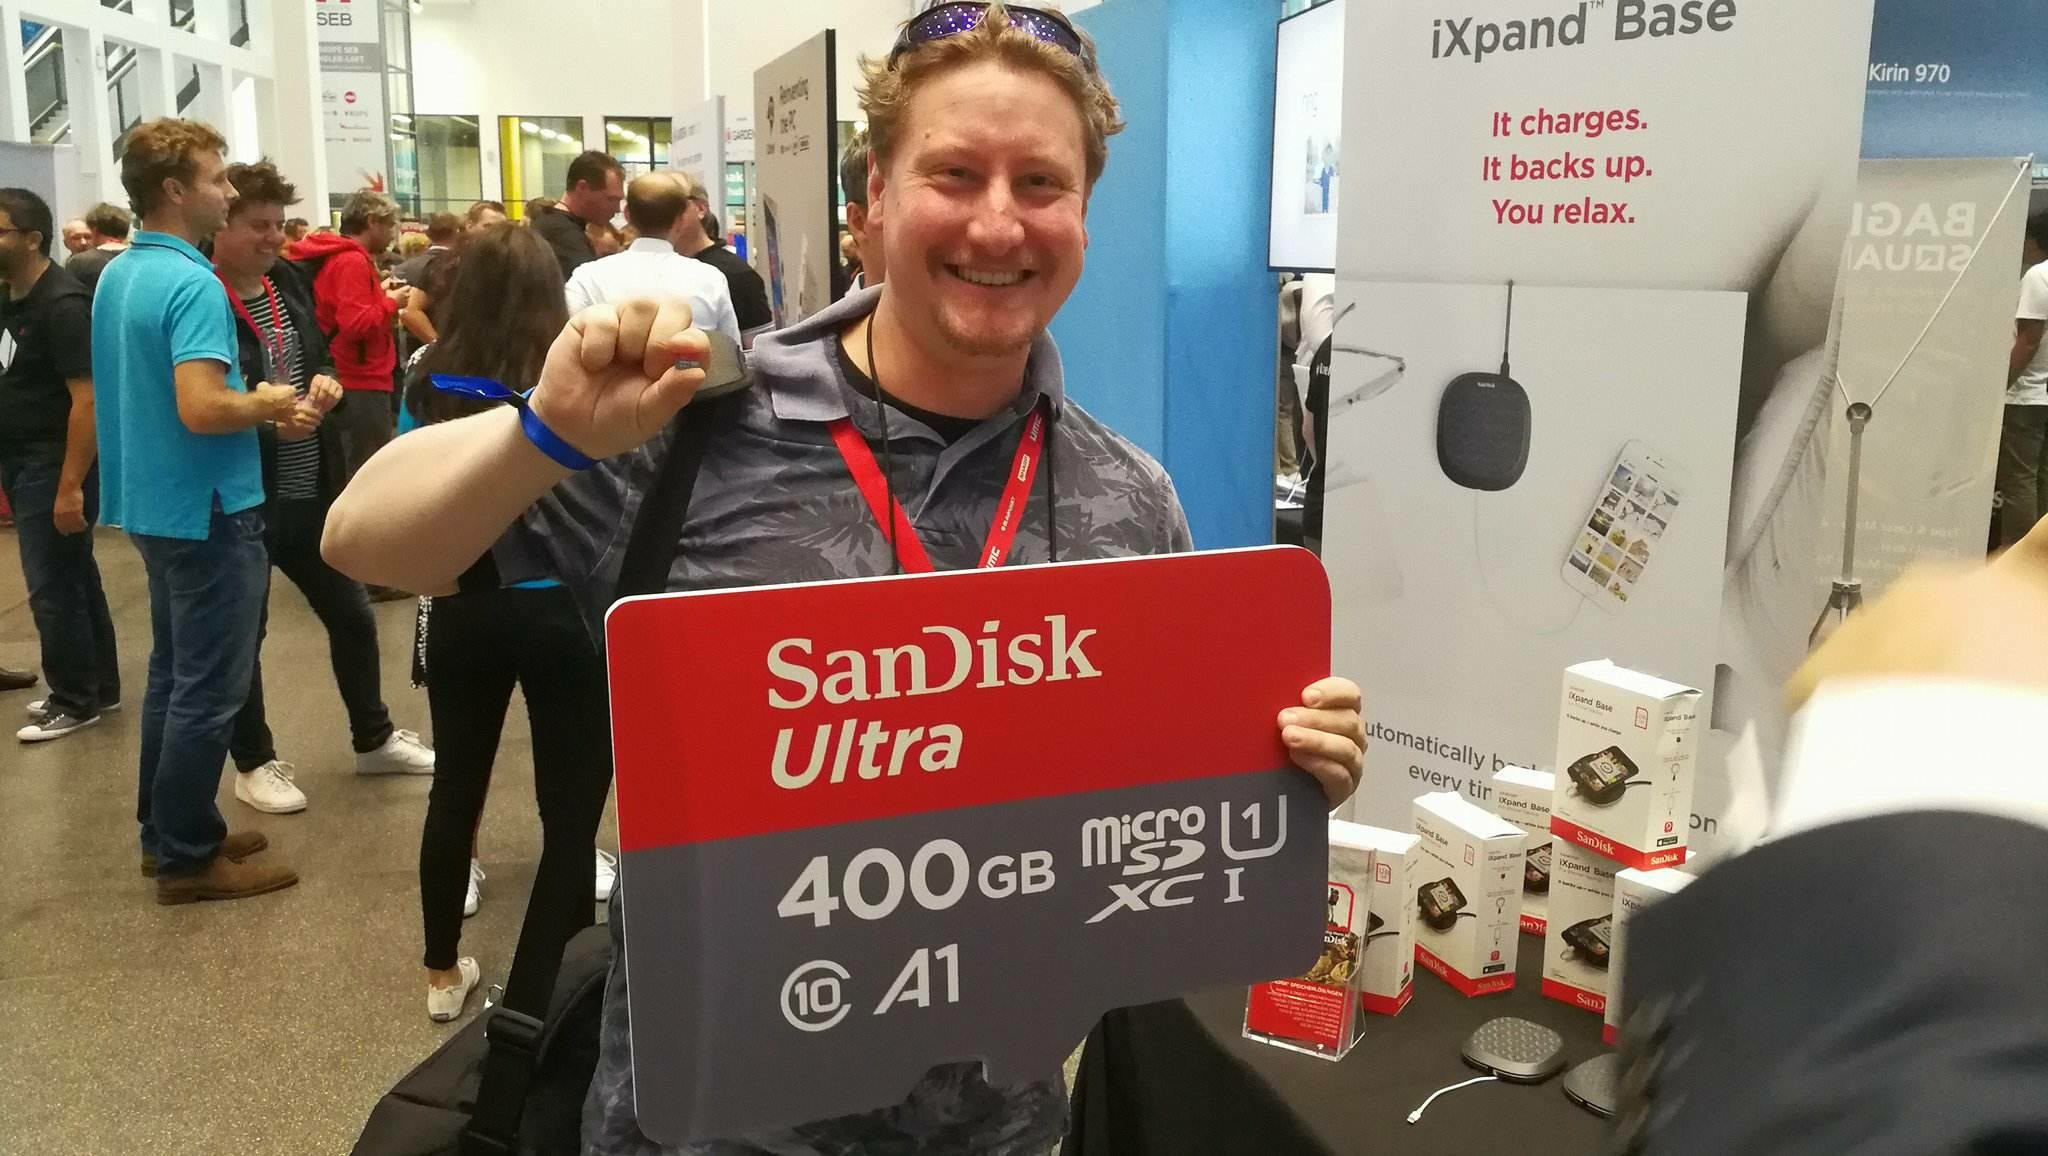 SanDisk to release a whopping 400GB SD Card.